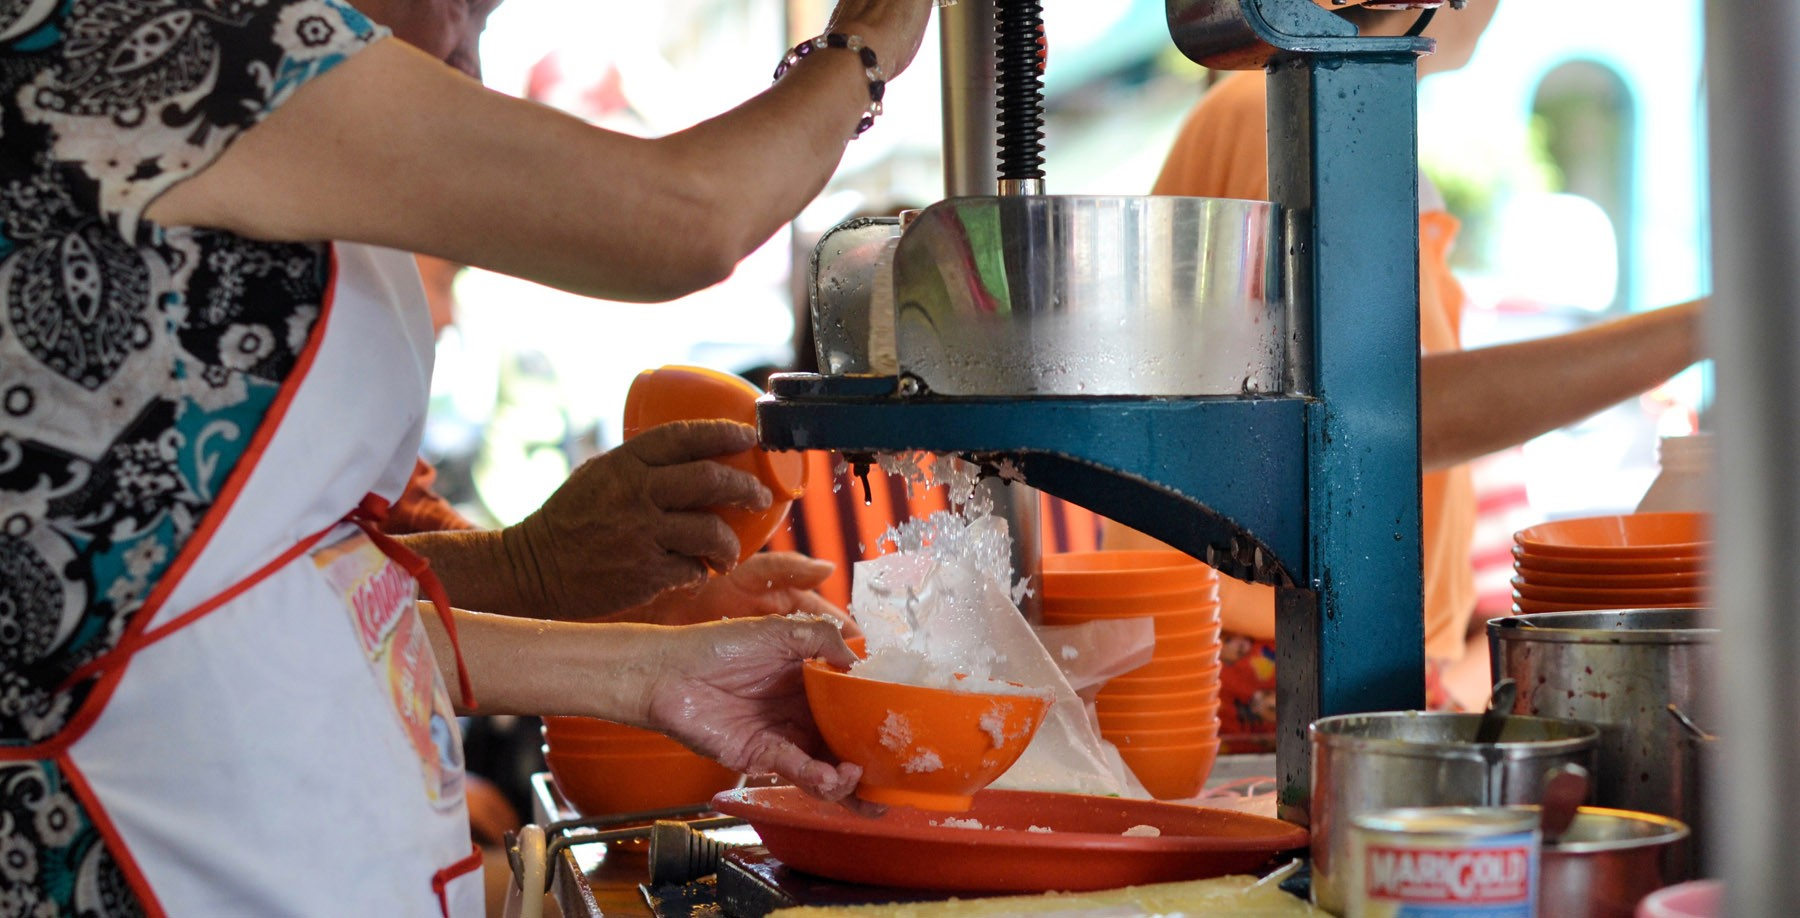 Ice blocks get shaved by a hand cranked machine.